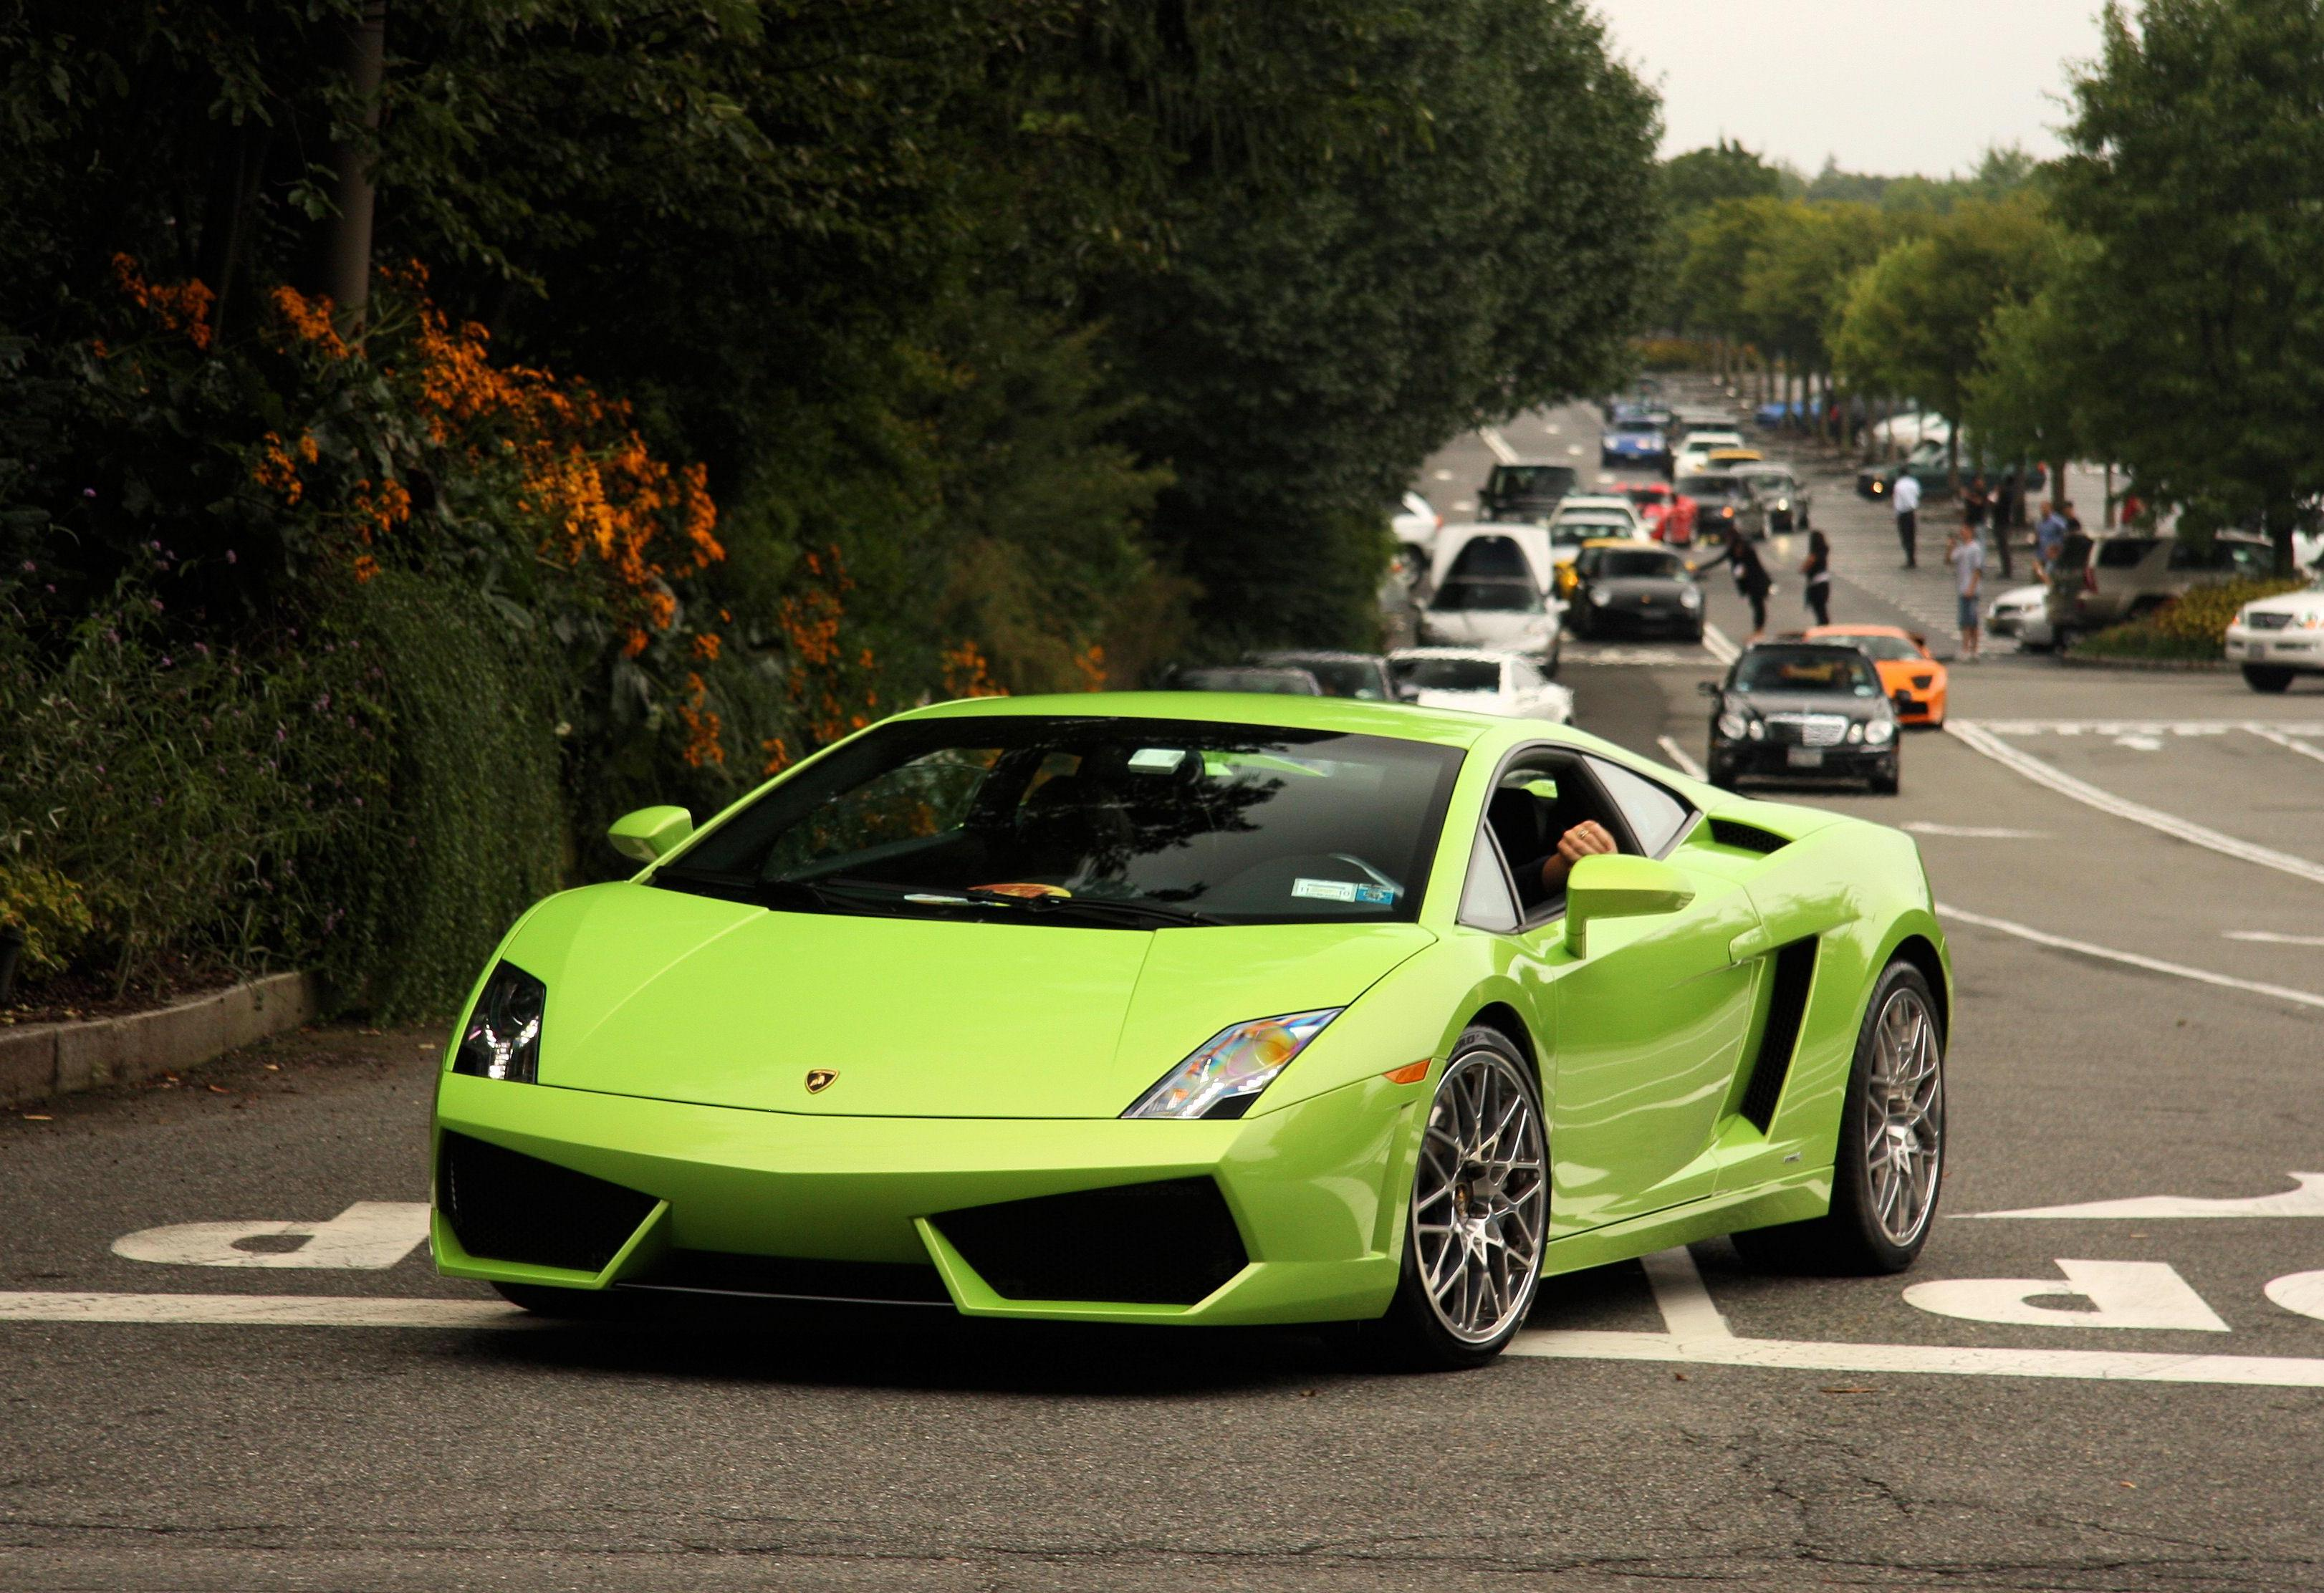 File:Lamborghini Gallardo LP560 4 Green